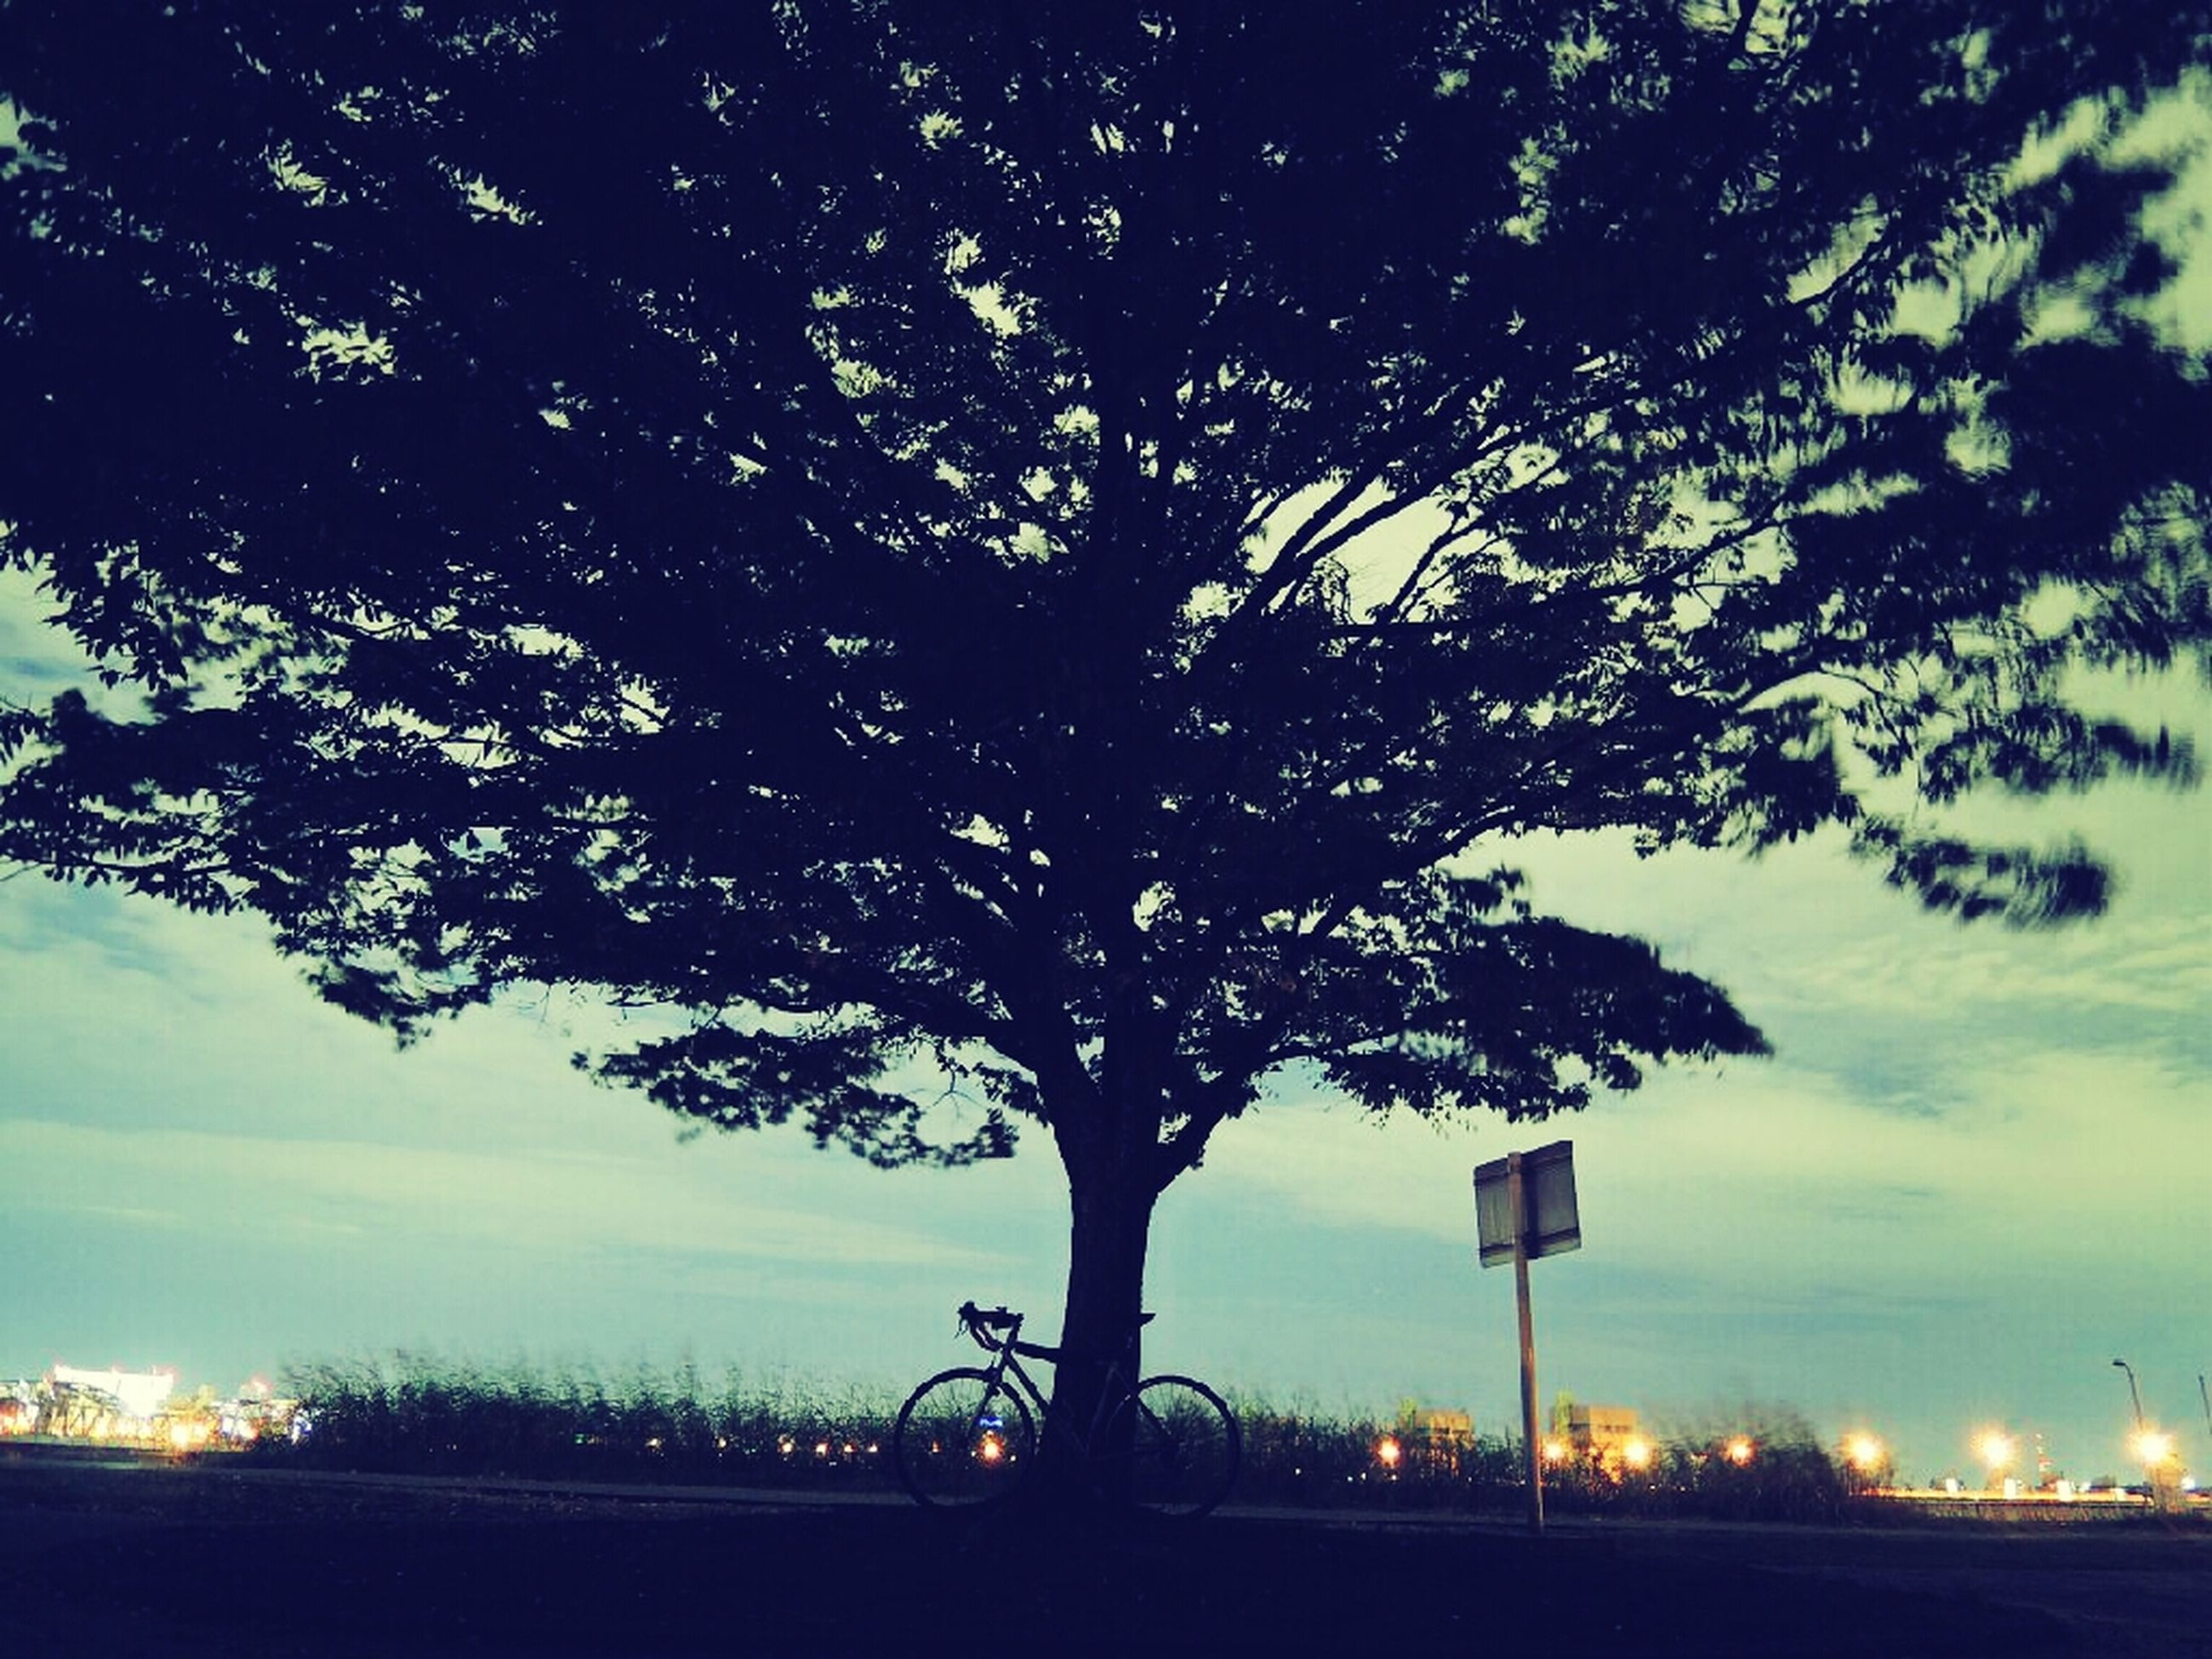 tree, silhouette, sky, tranquility, tranquil scene, nature, beauty in nature, scenics, tree trunk, sunset, branch, growth, street light, low angle view, cloud - sky, landscape, field, dusk, idyllic, outdoors